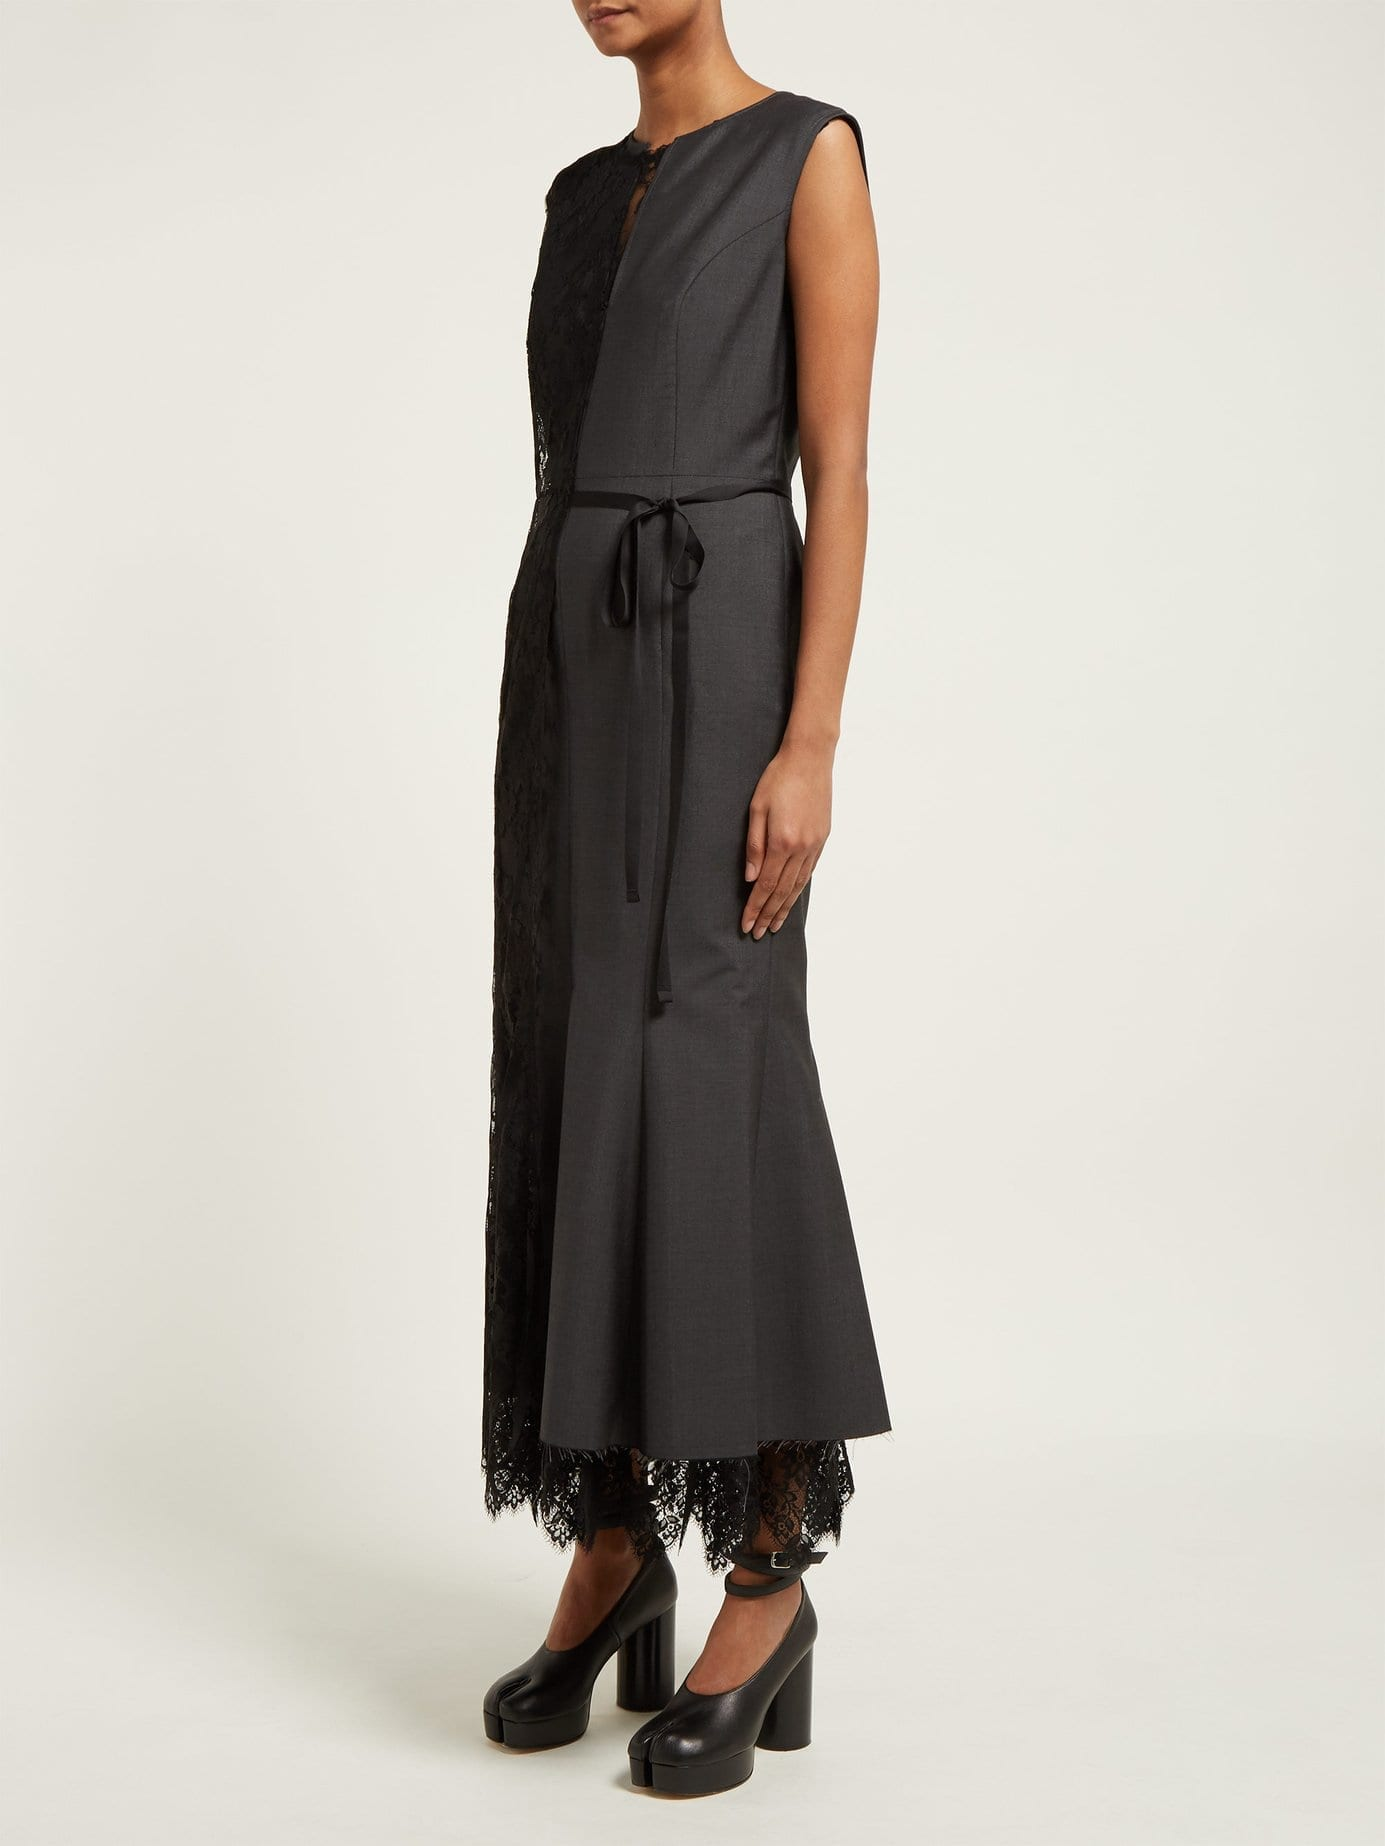 Junya Watanabe Lace Slip Overlay Wool Blend Grey Dress